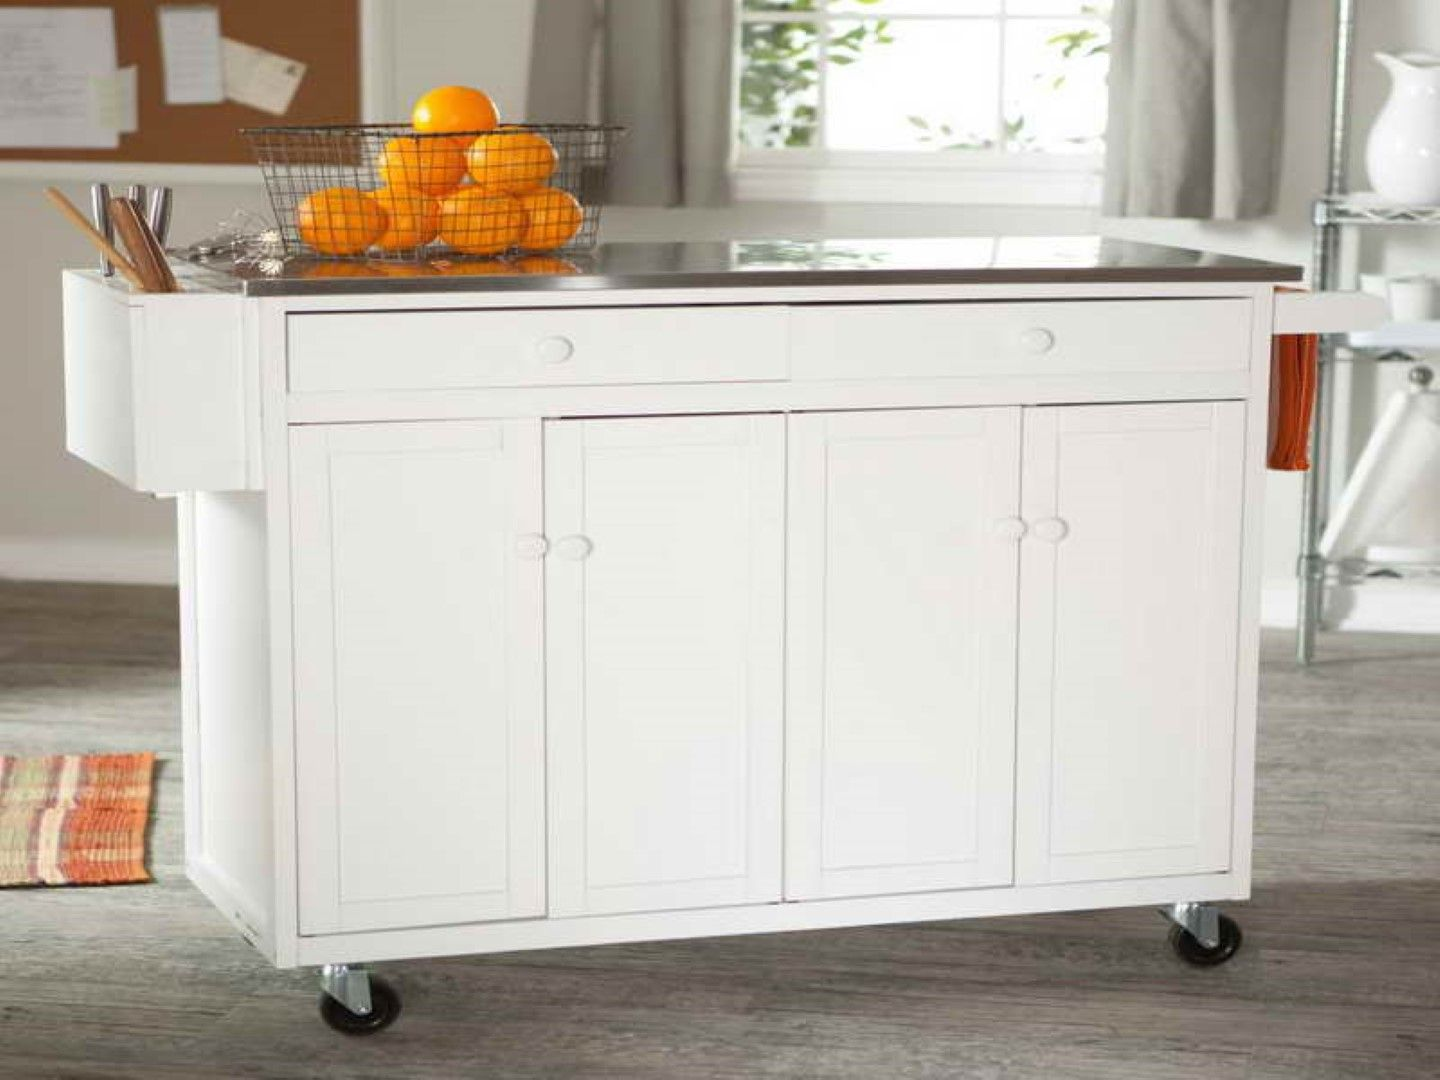 Kitchen, Wire Fruits Basket And Stainless Steel Countertop Feat Beautiful  Modern Portable Kitchen Island Design: Small Portable Kitchen Island  Designs with ...